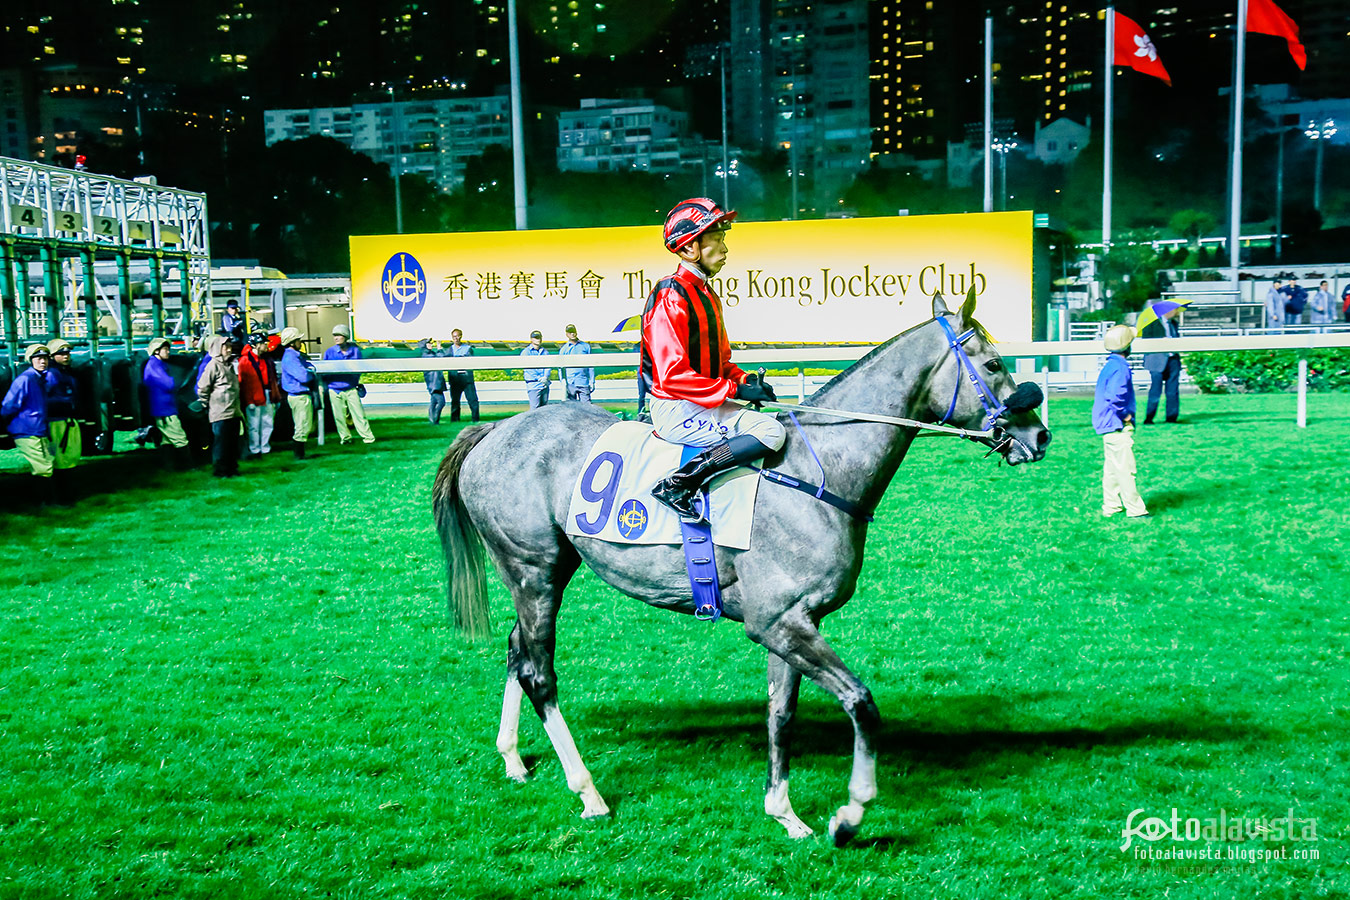 Hong Kong Jockey Club - Fotografía